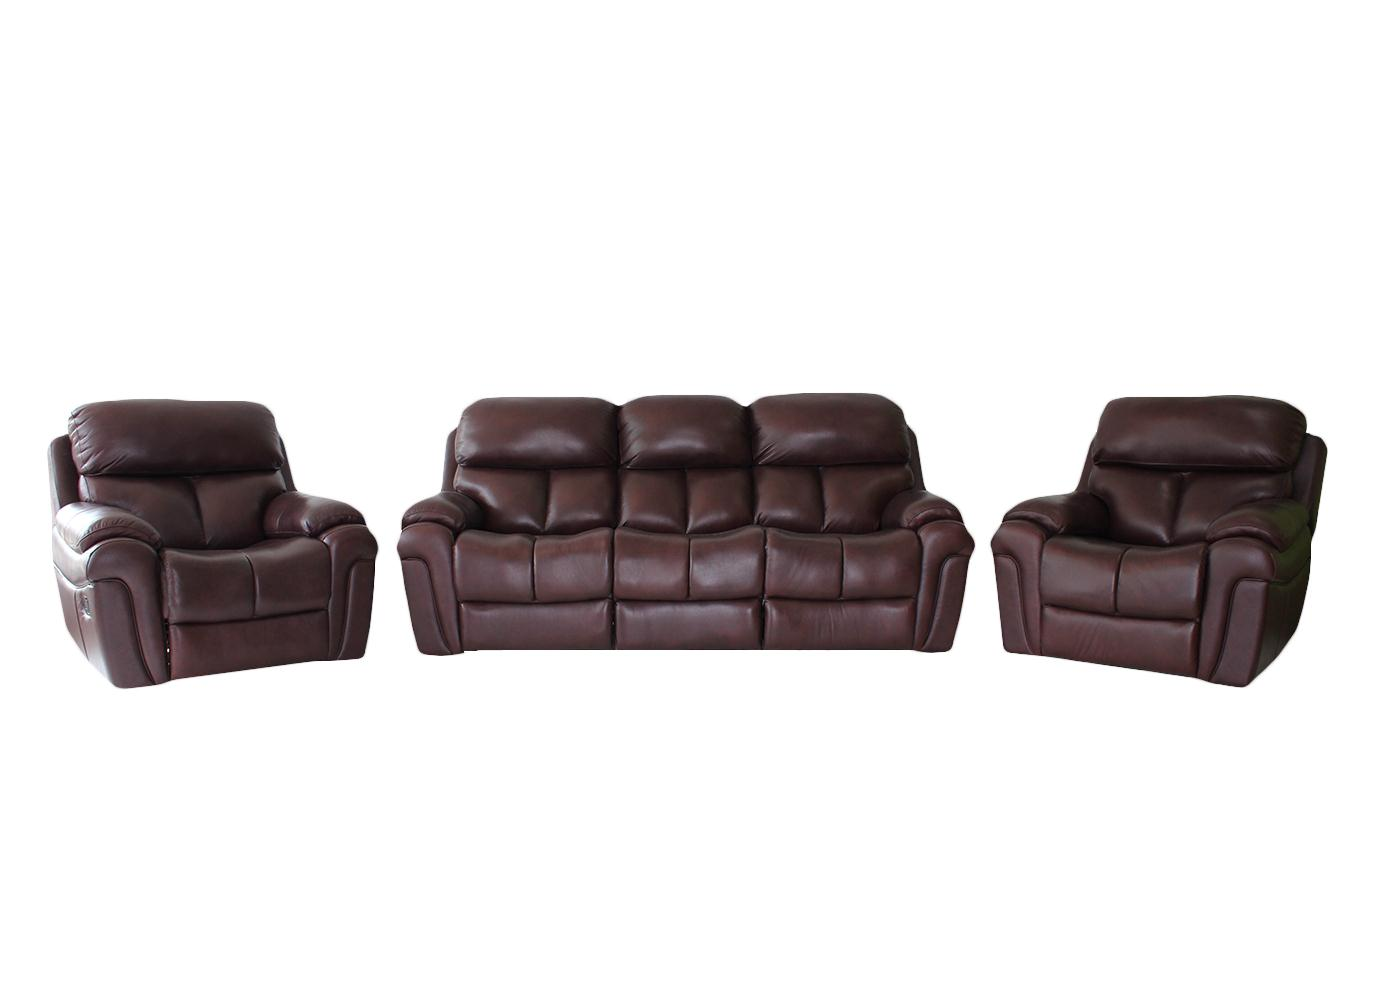 Cincinnati 3 Piece Leather Recliner Lounge Suite